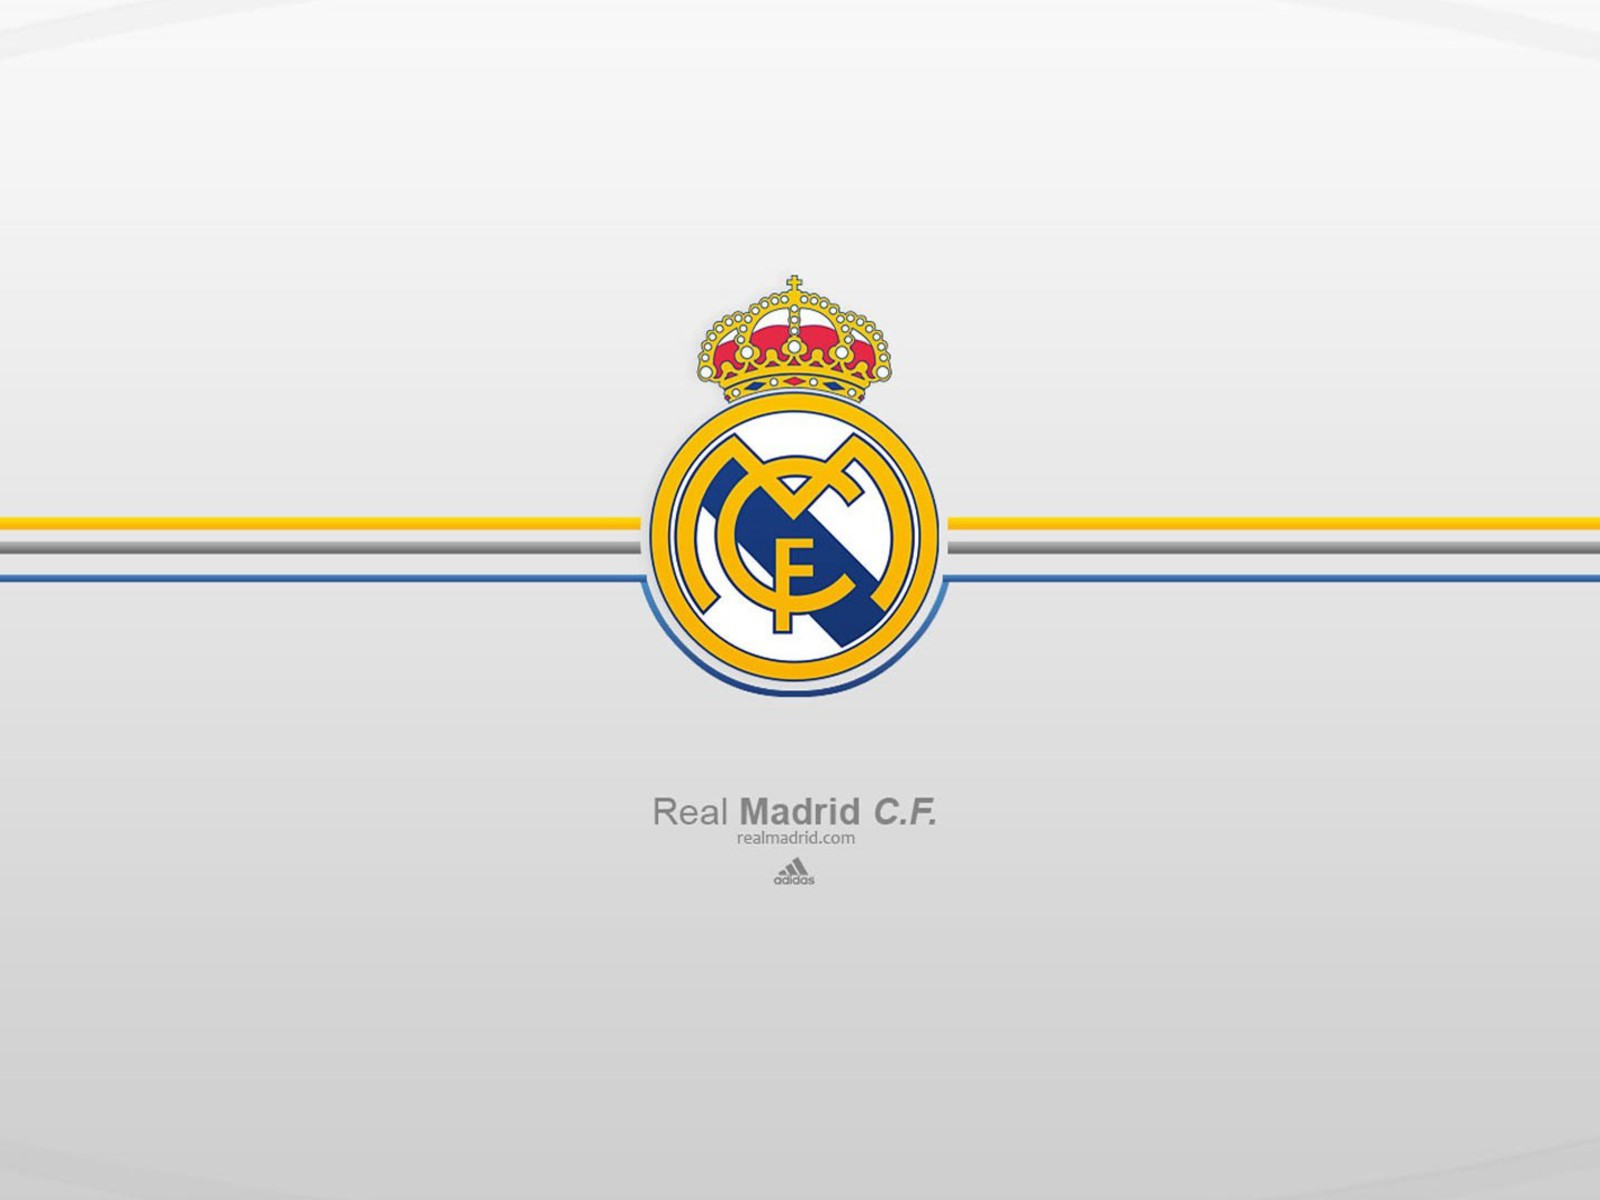 1600x1200 - Real Madrid C.F. Wallpapers 19